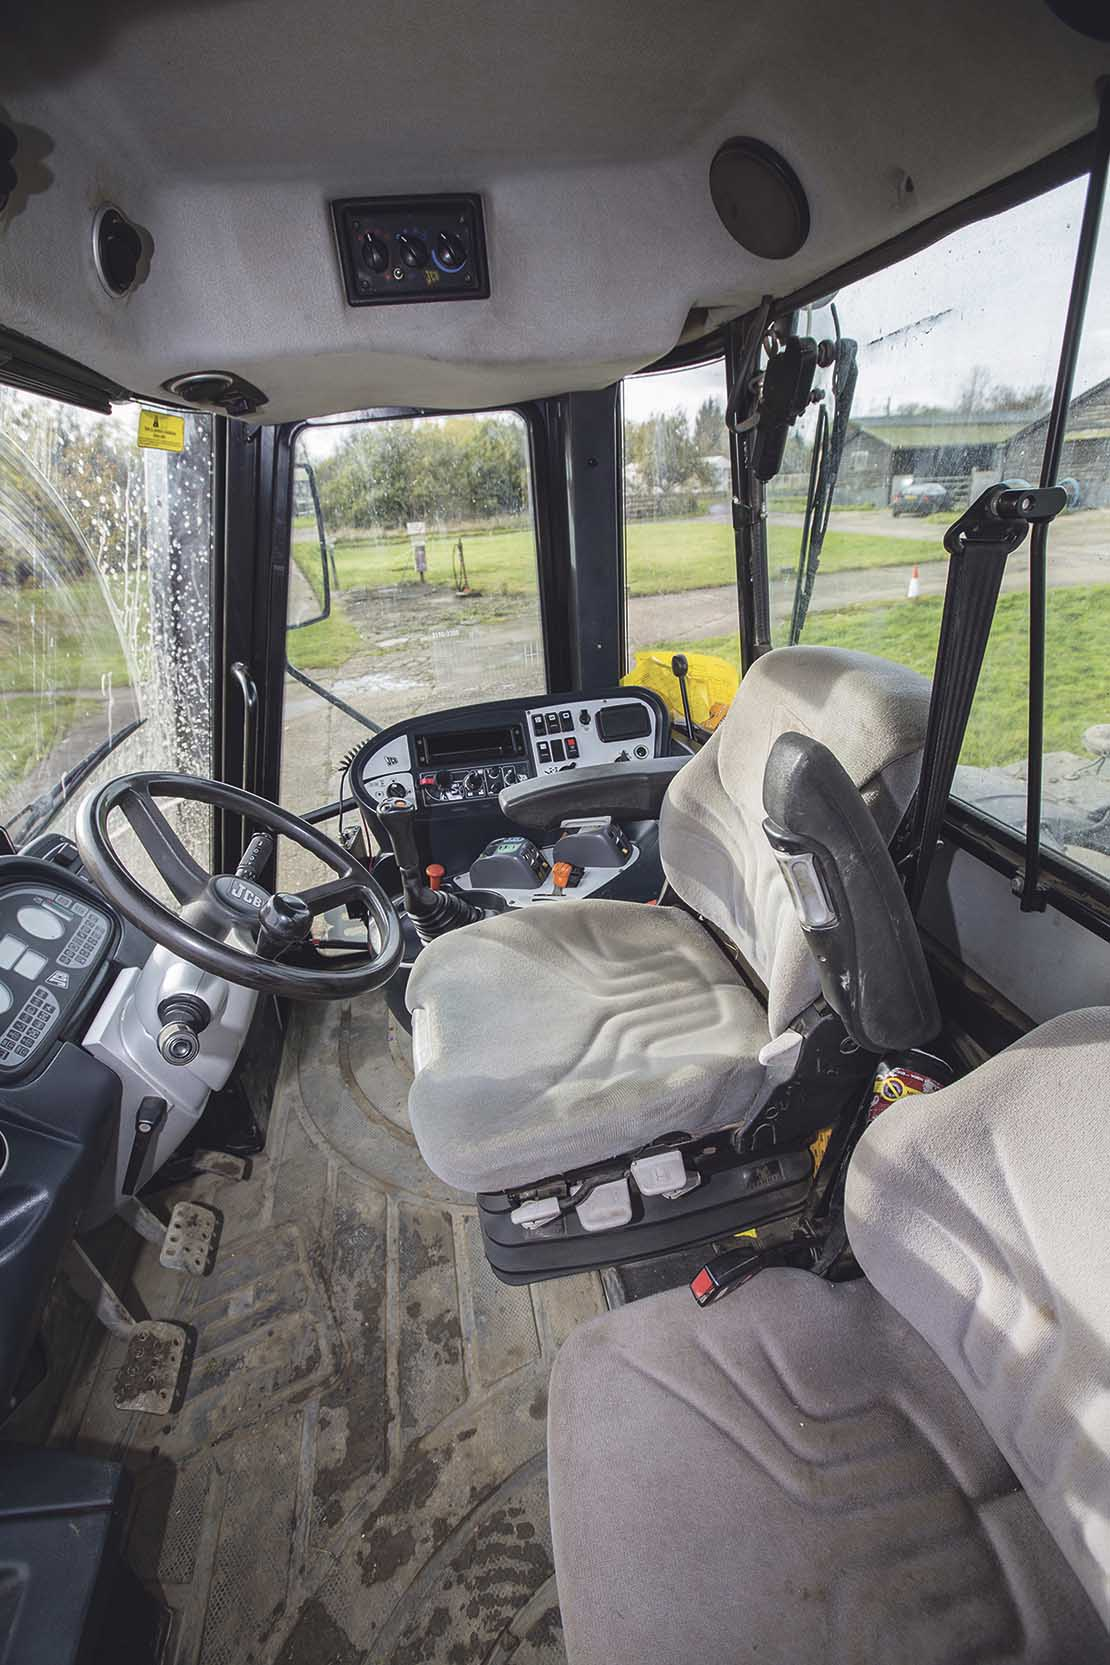 Buyer's guide: JCB Fastrac 3000 Series - INSIGHTS - Farmers ... on